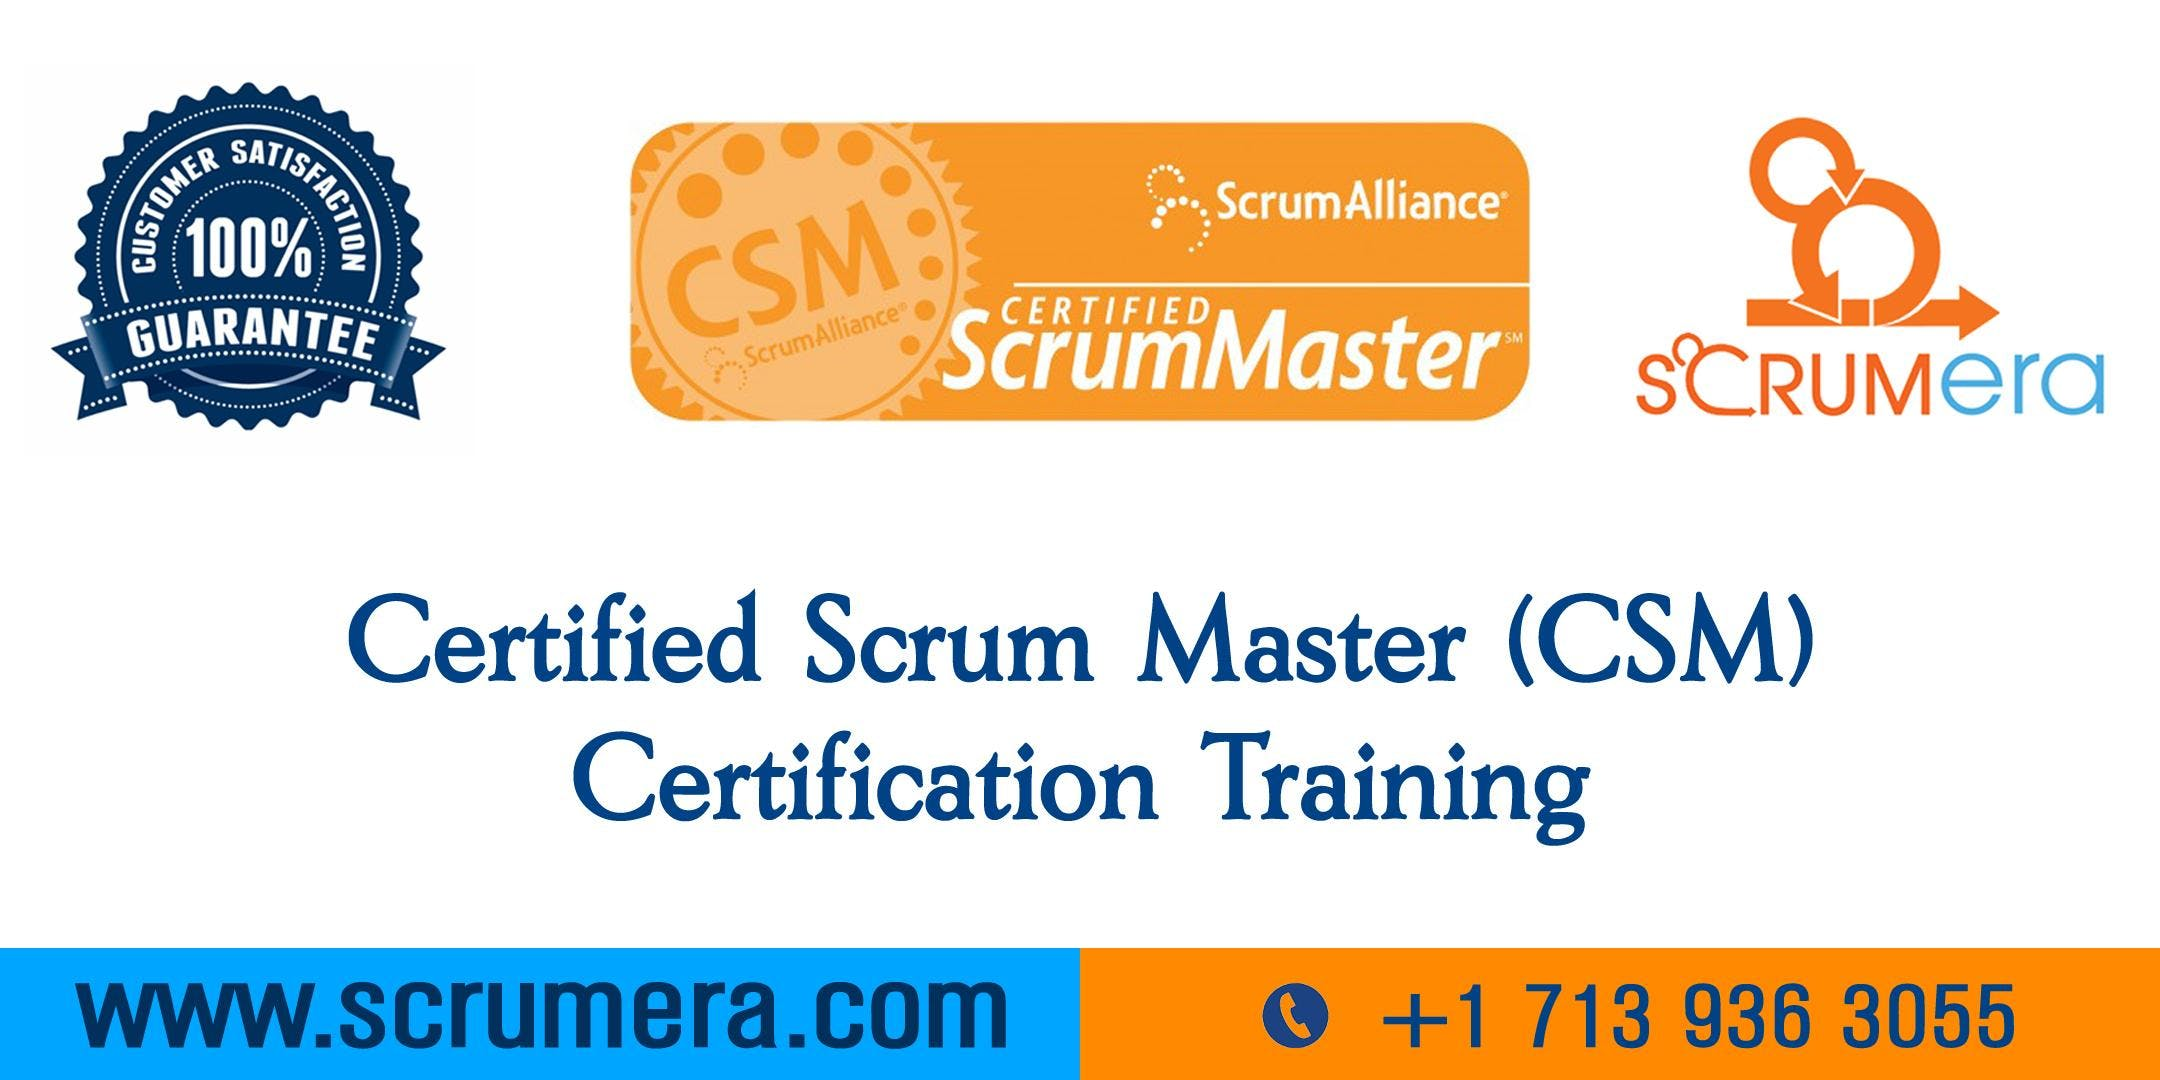 Scrum Master Certification | CSM Training | CSM Certification Workshop | Certified Scrum Master (CSM) Training in Jersey City, NJ | ScrumERA